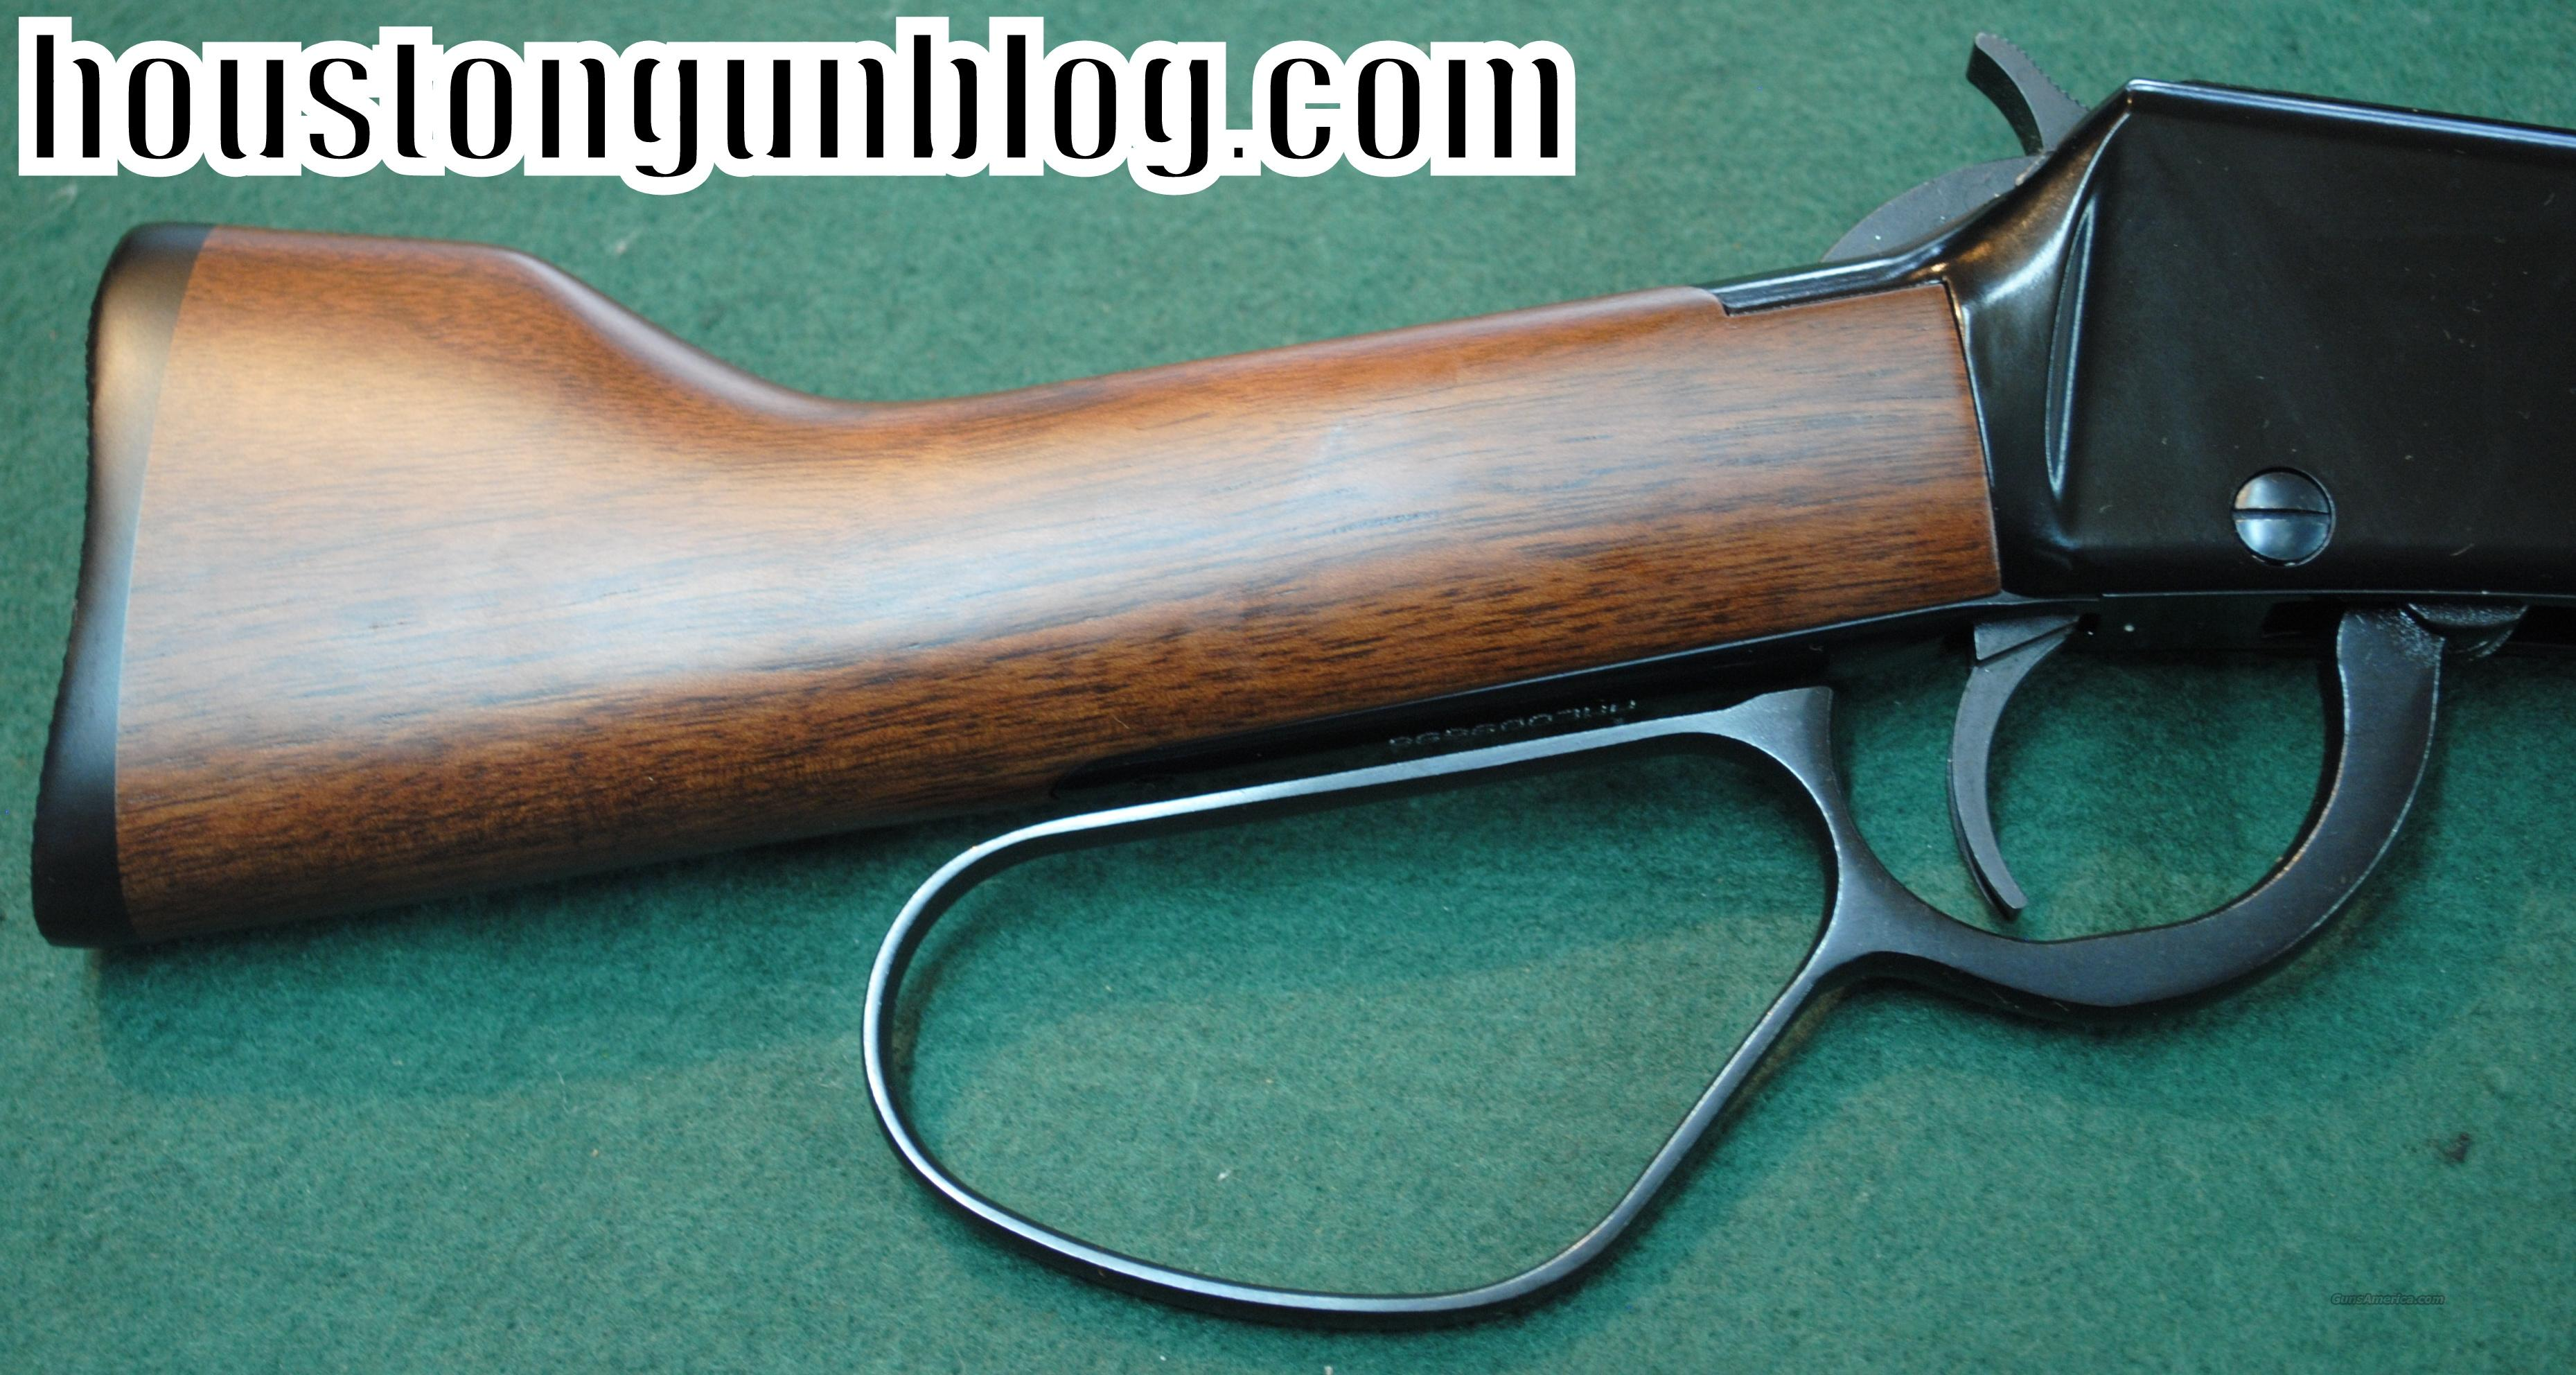 Henry Mares Leg PISTOL 22LR NEW IN BOX Lever Action  Guns > Rifles > Henry Rifle Company